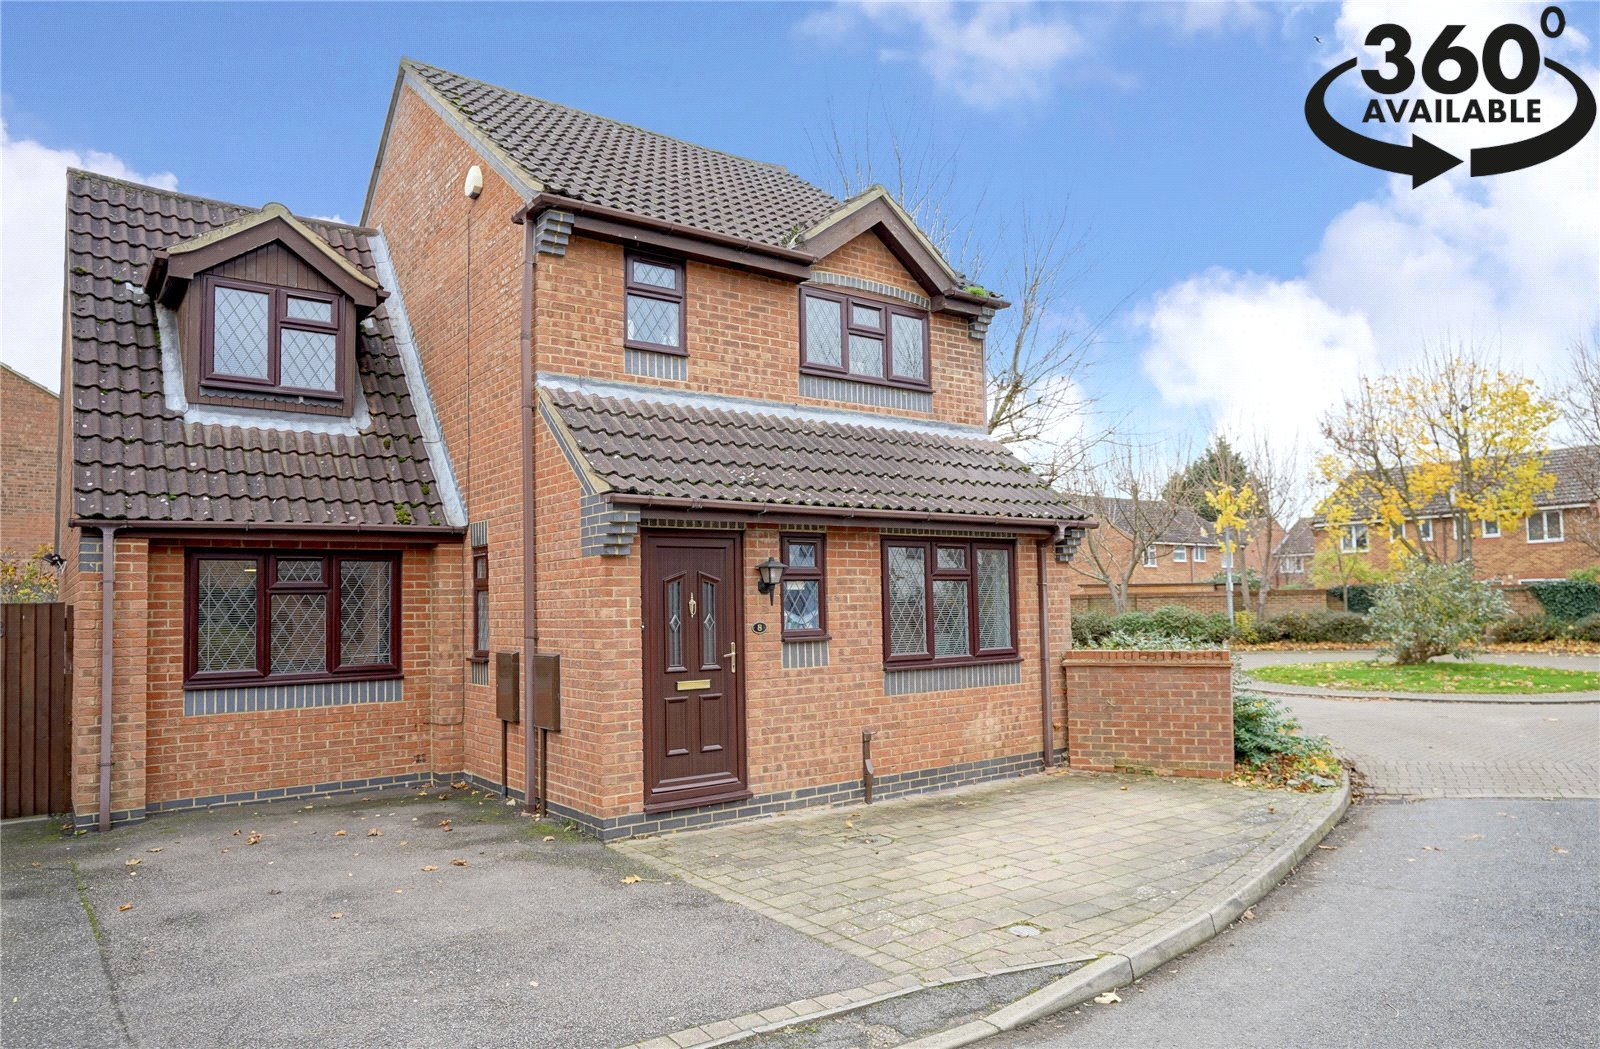 3 bed house for sale in St. Neots, PE19 1QX - Property Image 1